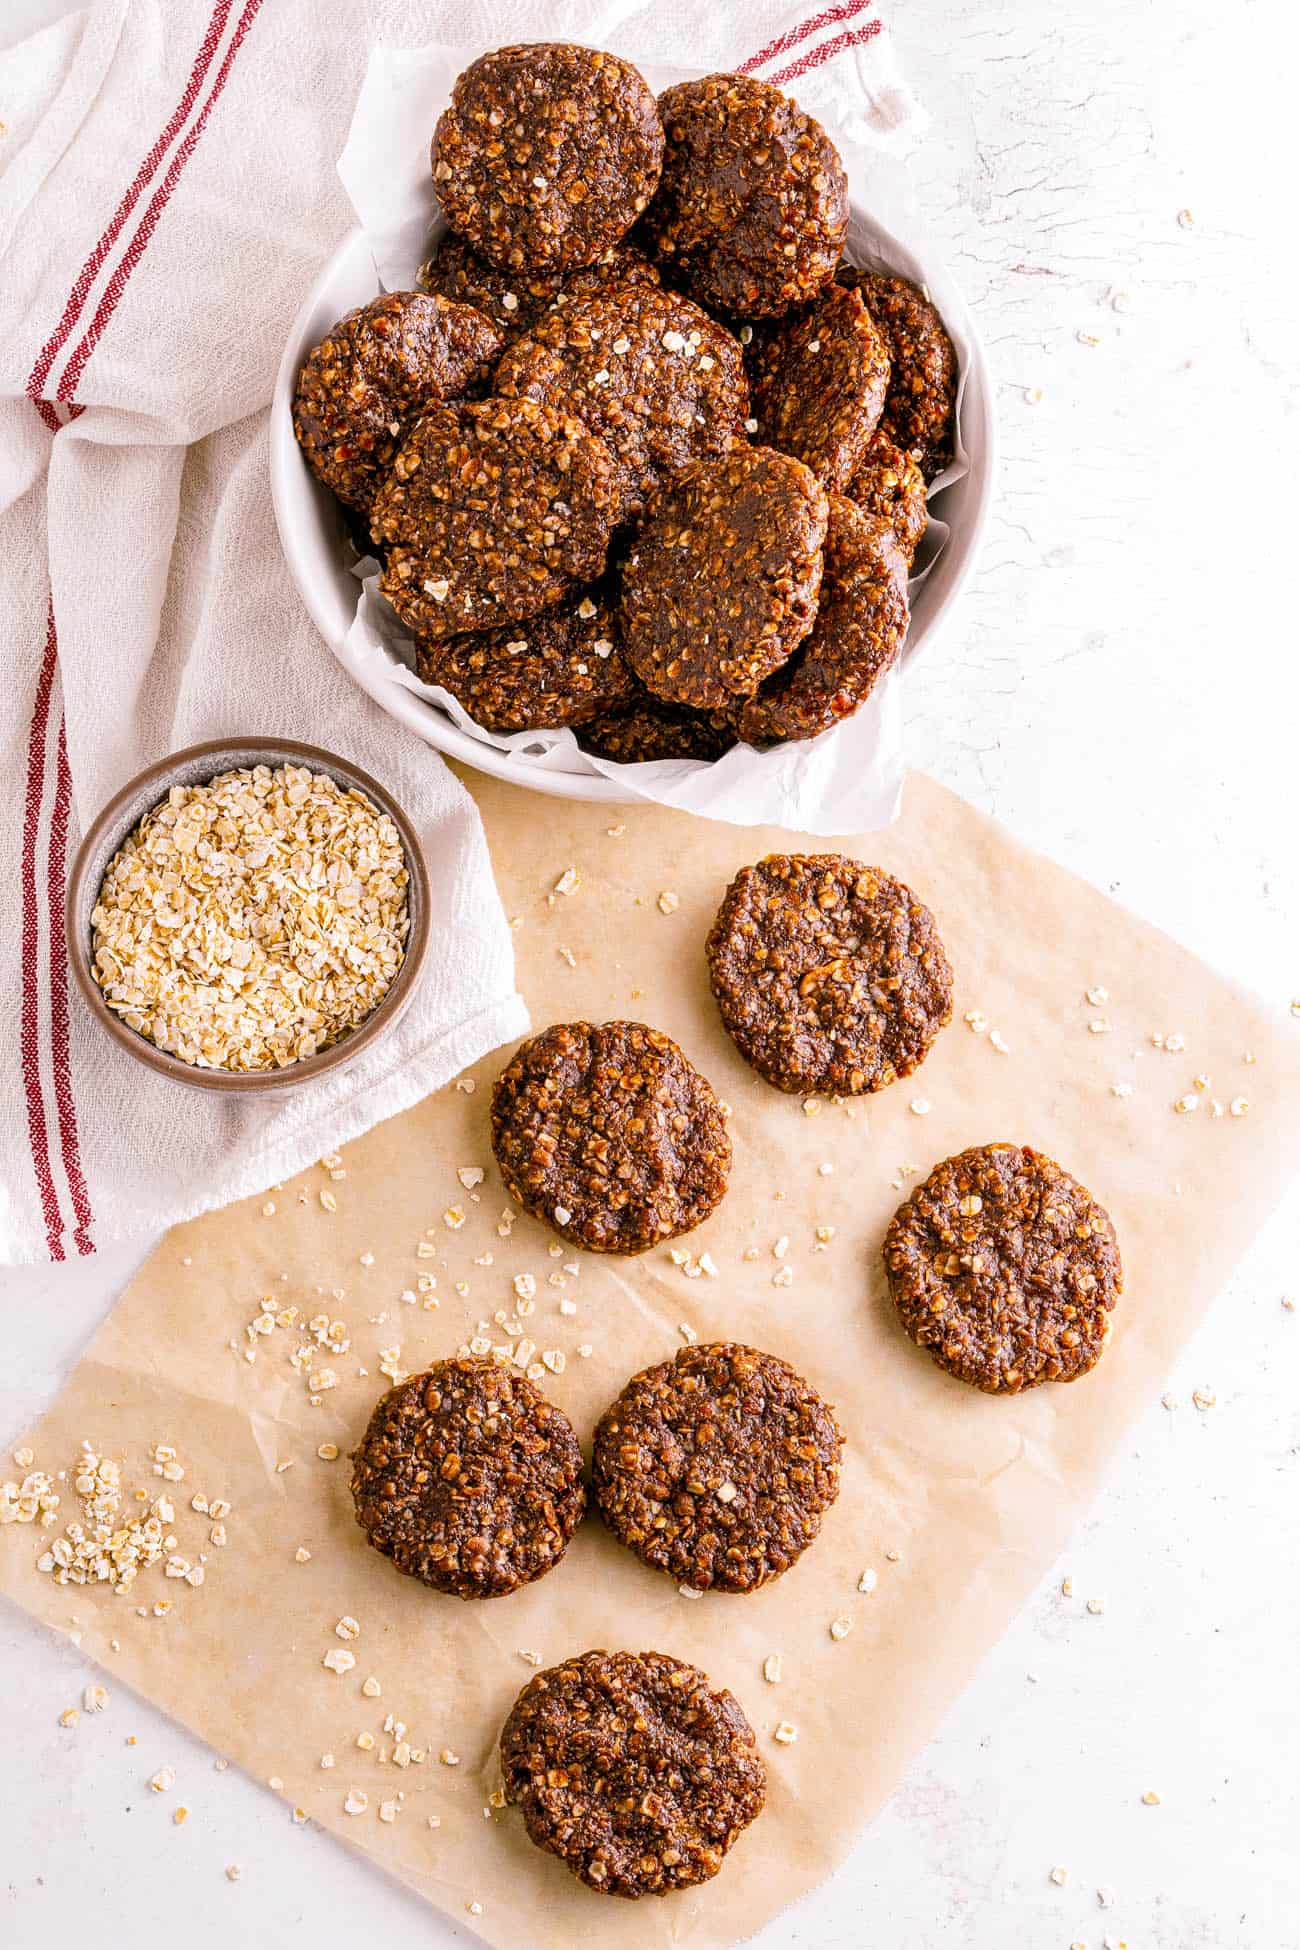 no bake cookies without peanut butter on brown parchment paper with rolled oats sprinkled on top